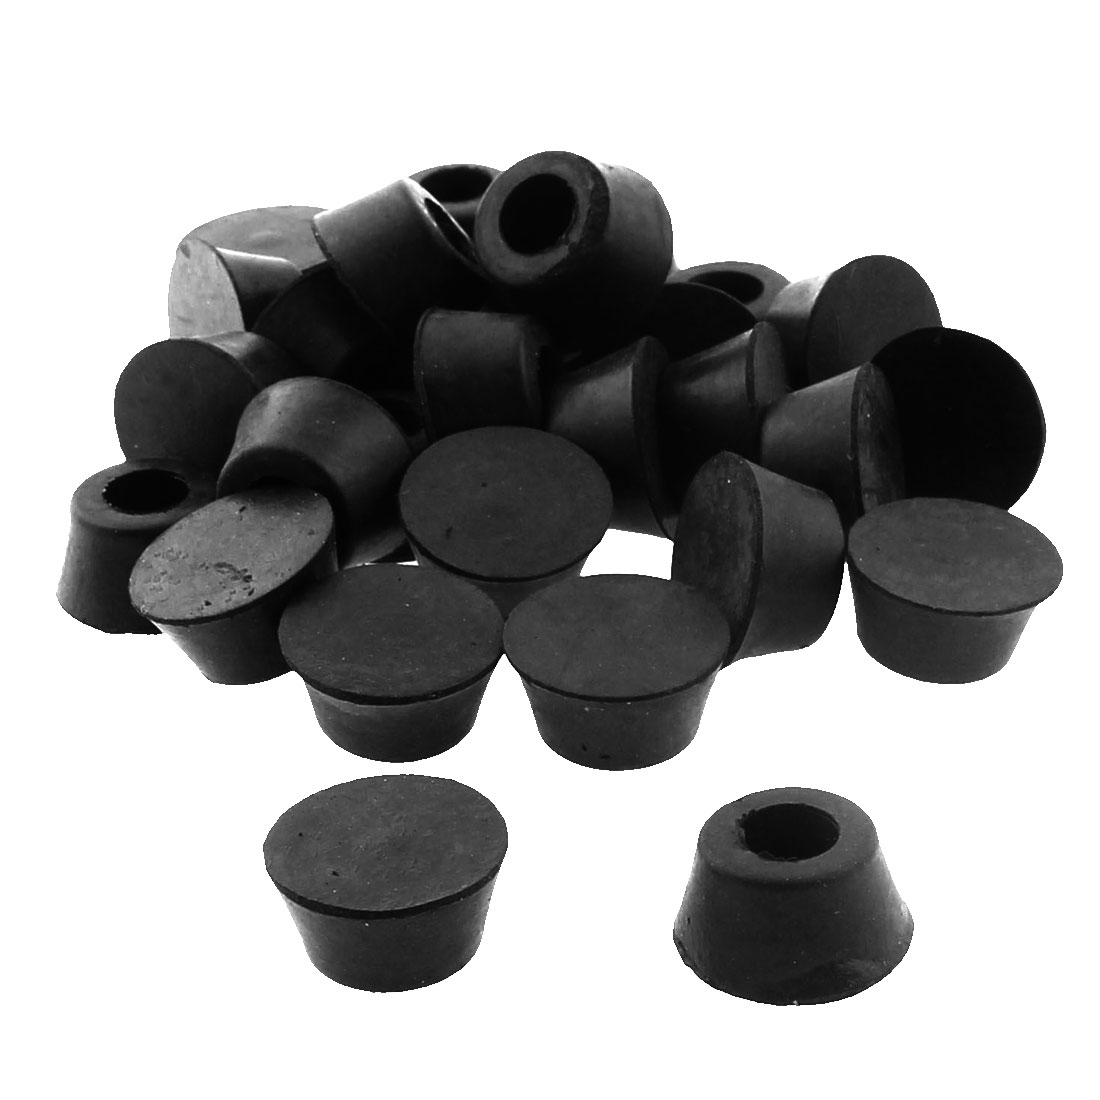 19mm x 14mm x 10mm Cabinet Amplifier Speaker Furniture Table Chair Rubber Feet Pad Black 30pcs